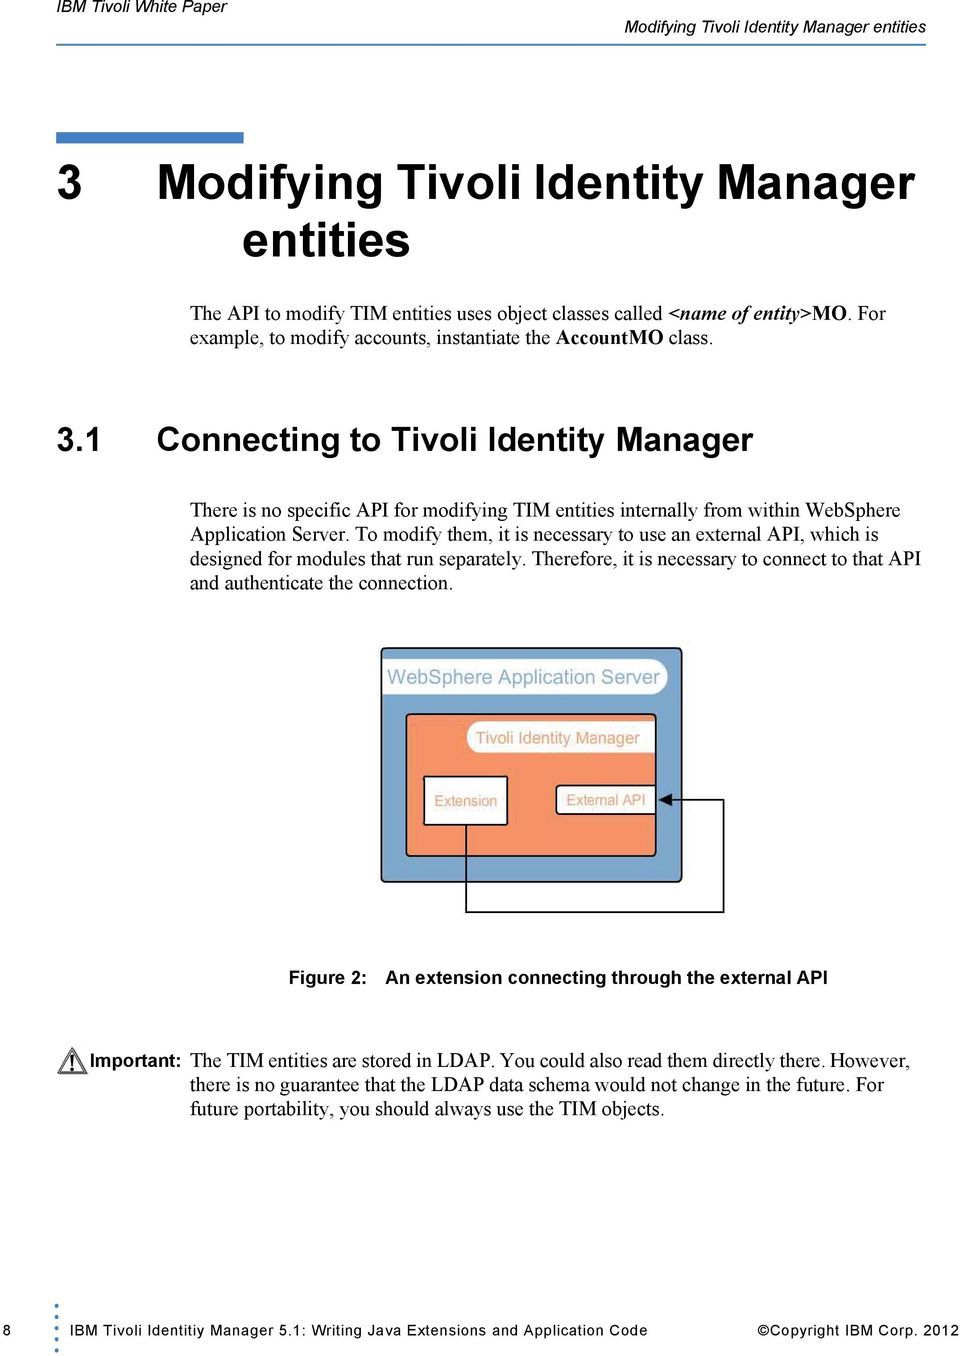 IBM Tivoli Identitiy Manager 5 1: Writing Java Extensions